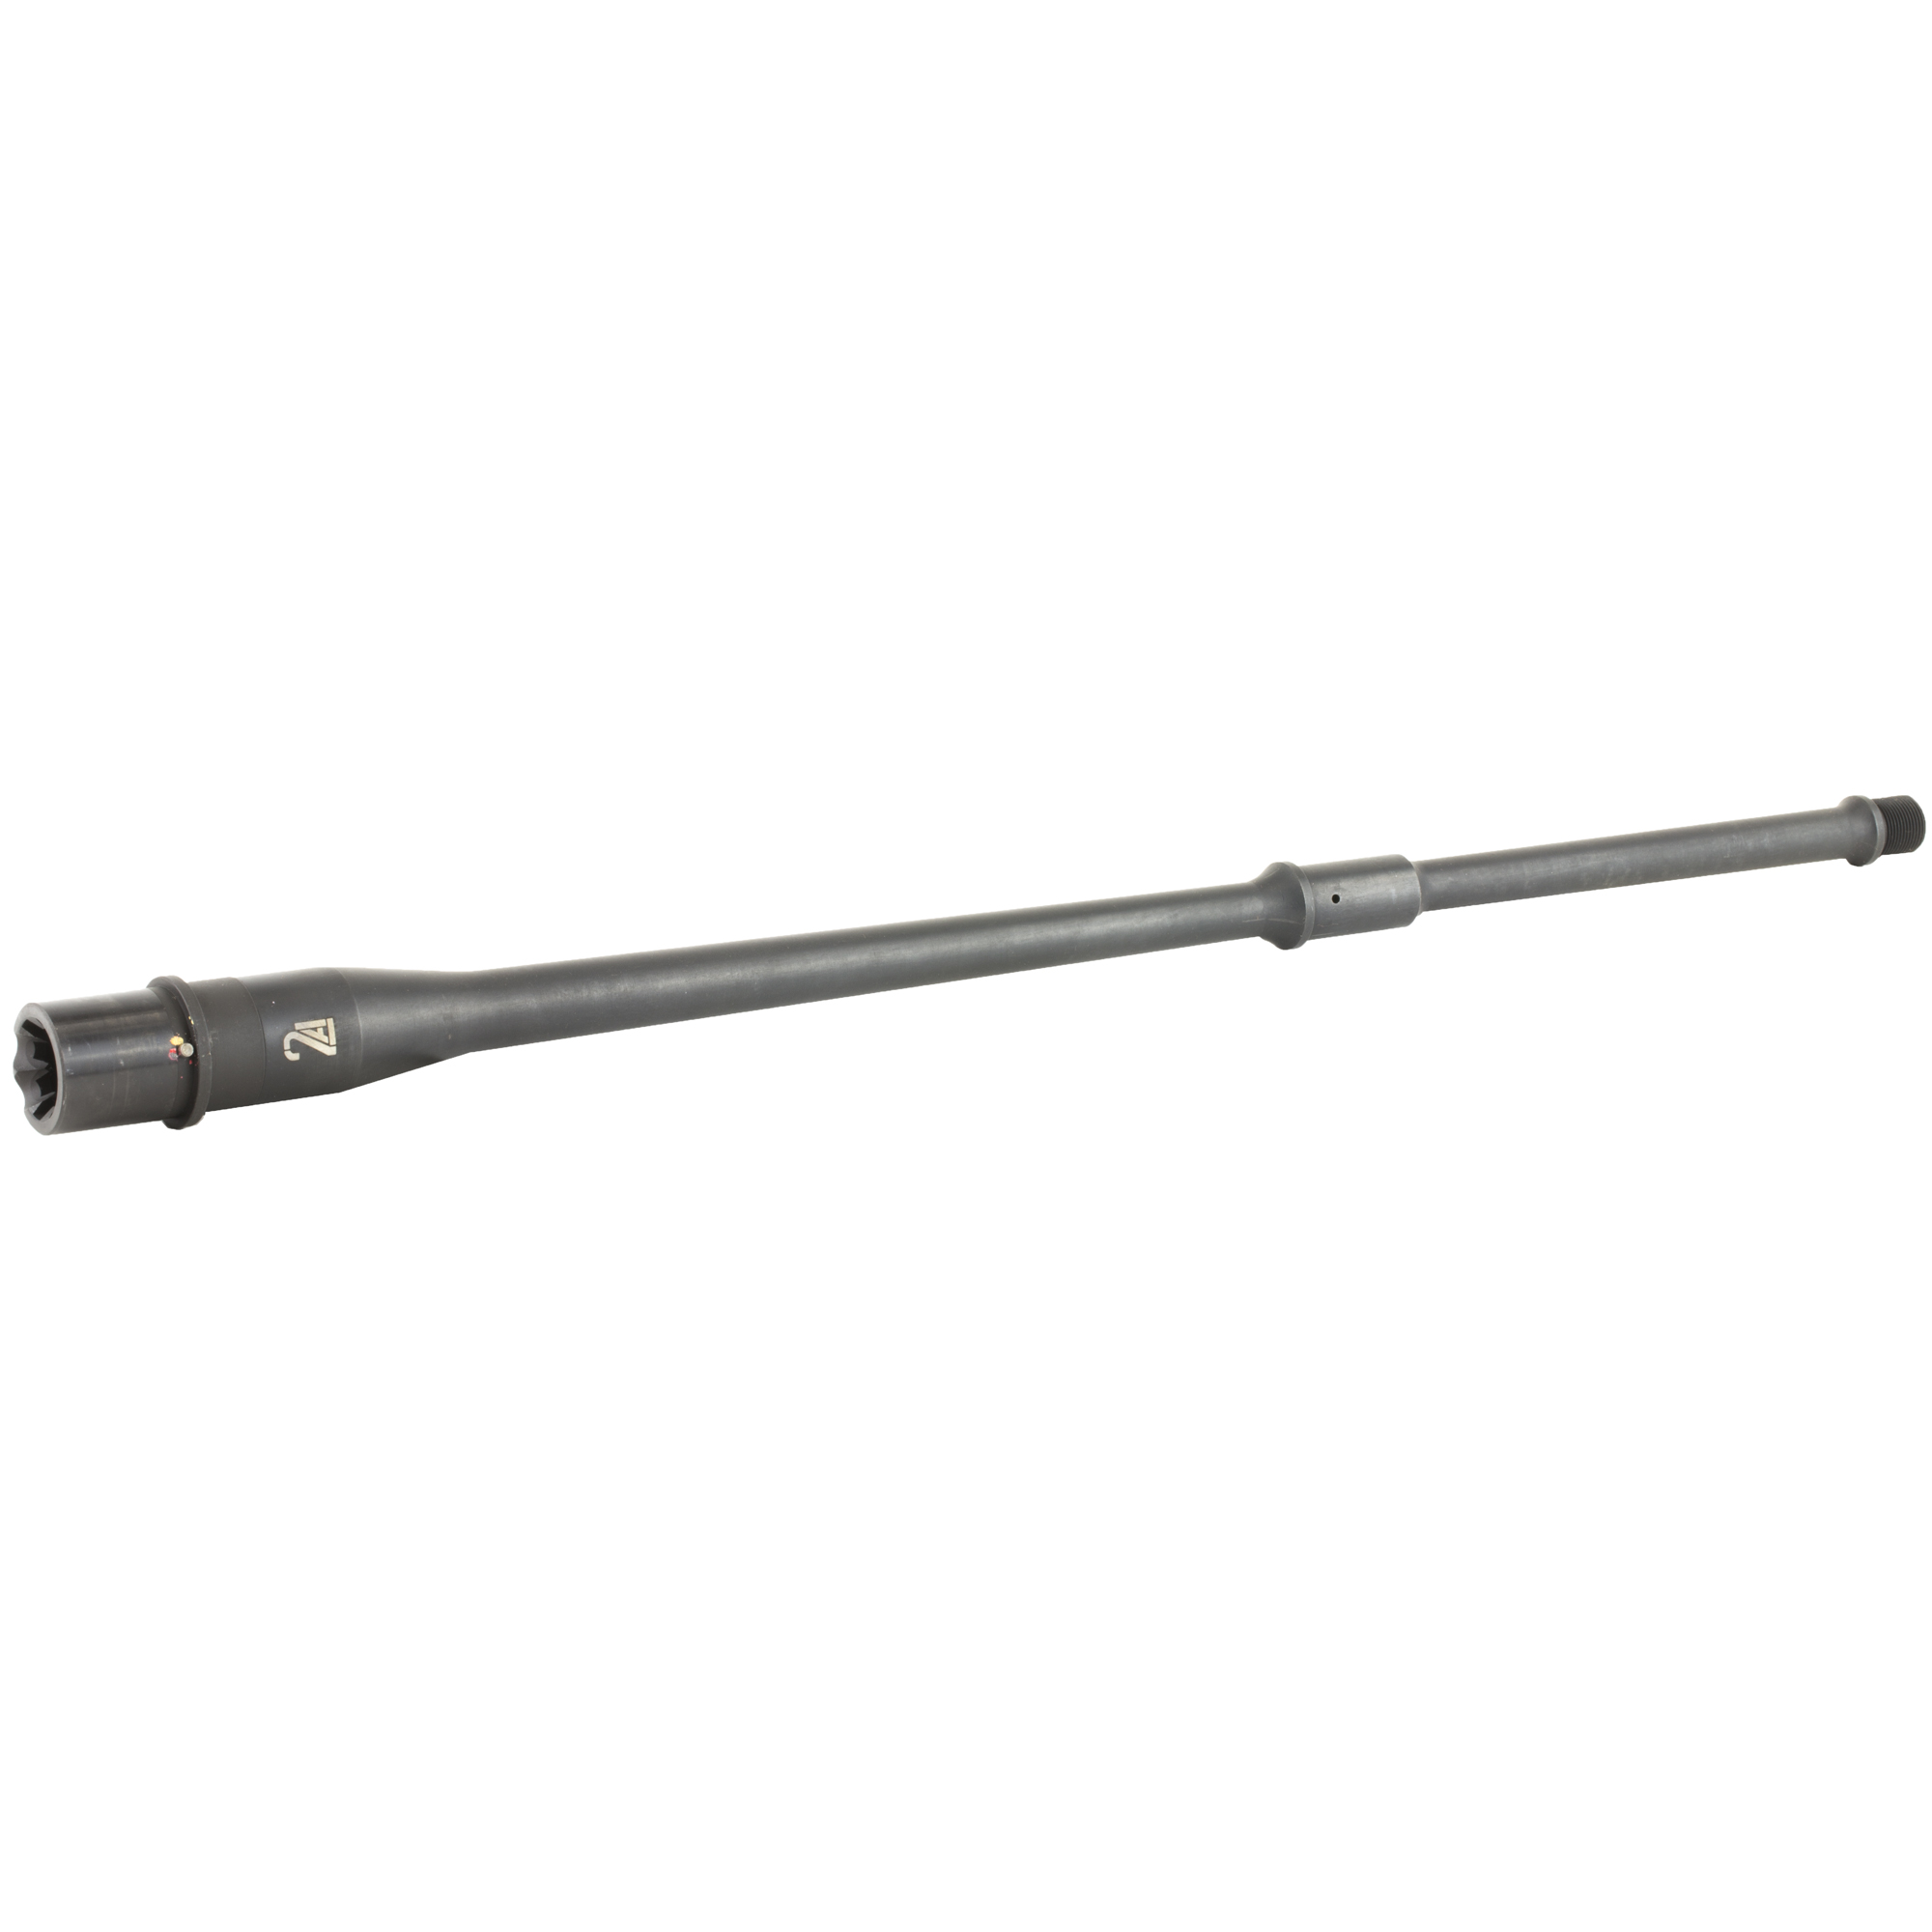 "2a Bbl 20"" 6.5 Creed Lightweight Blk"